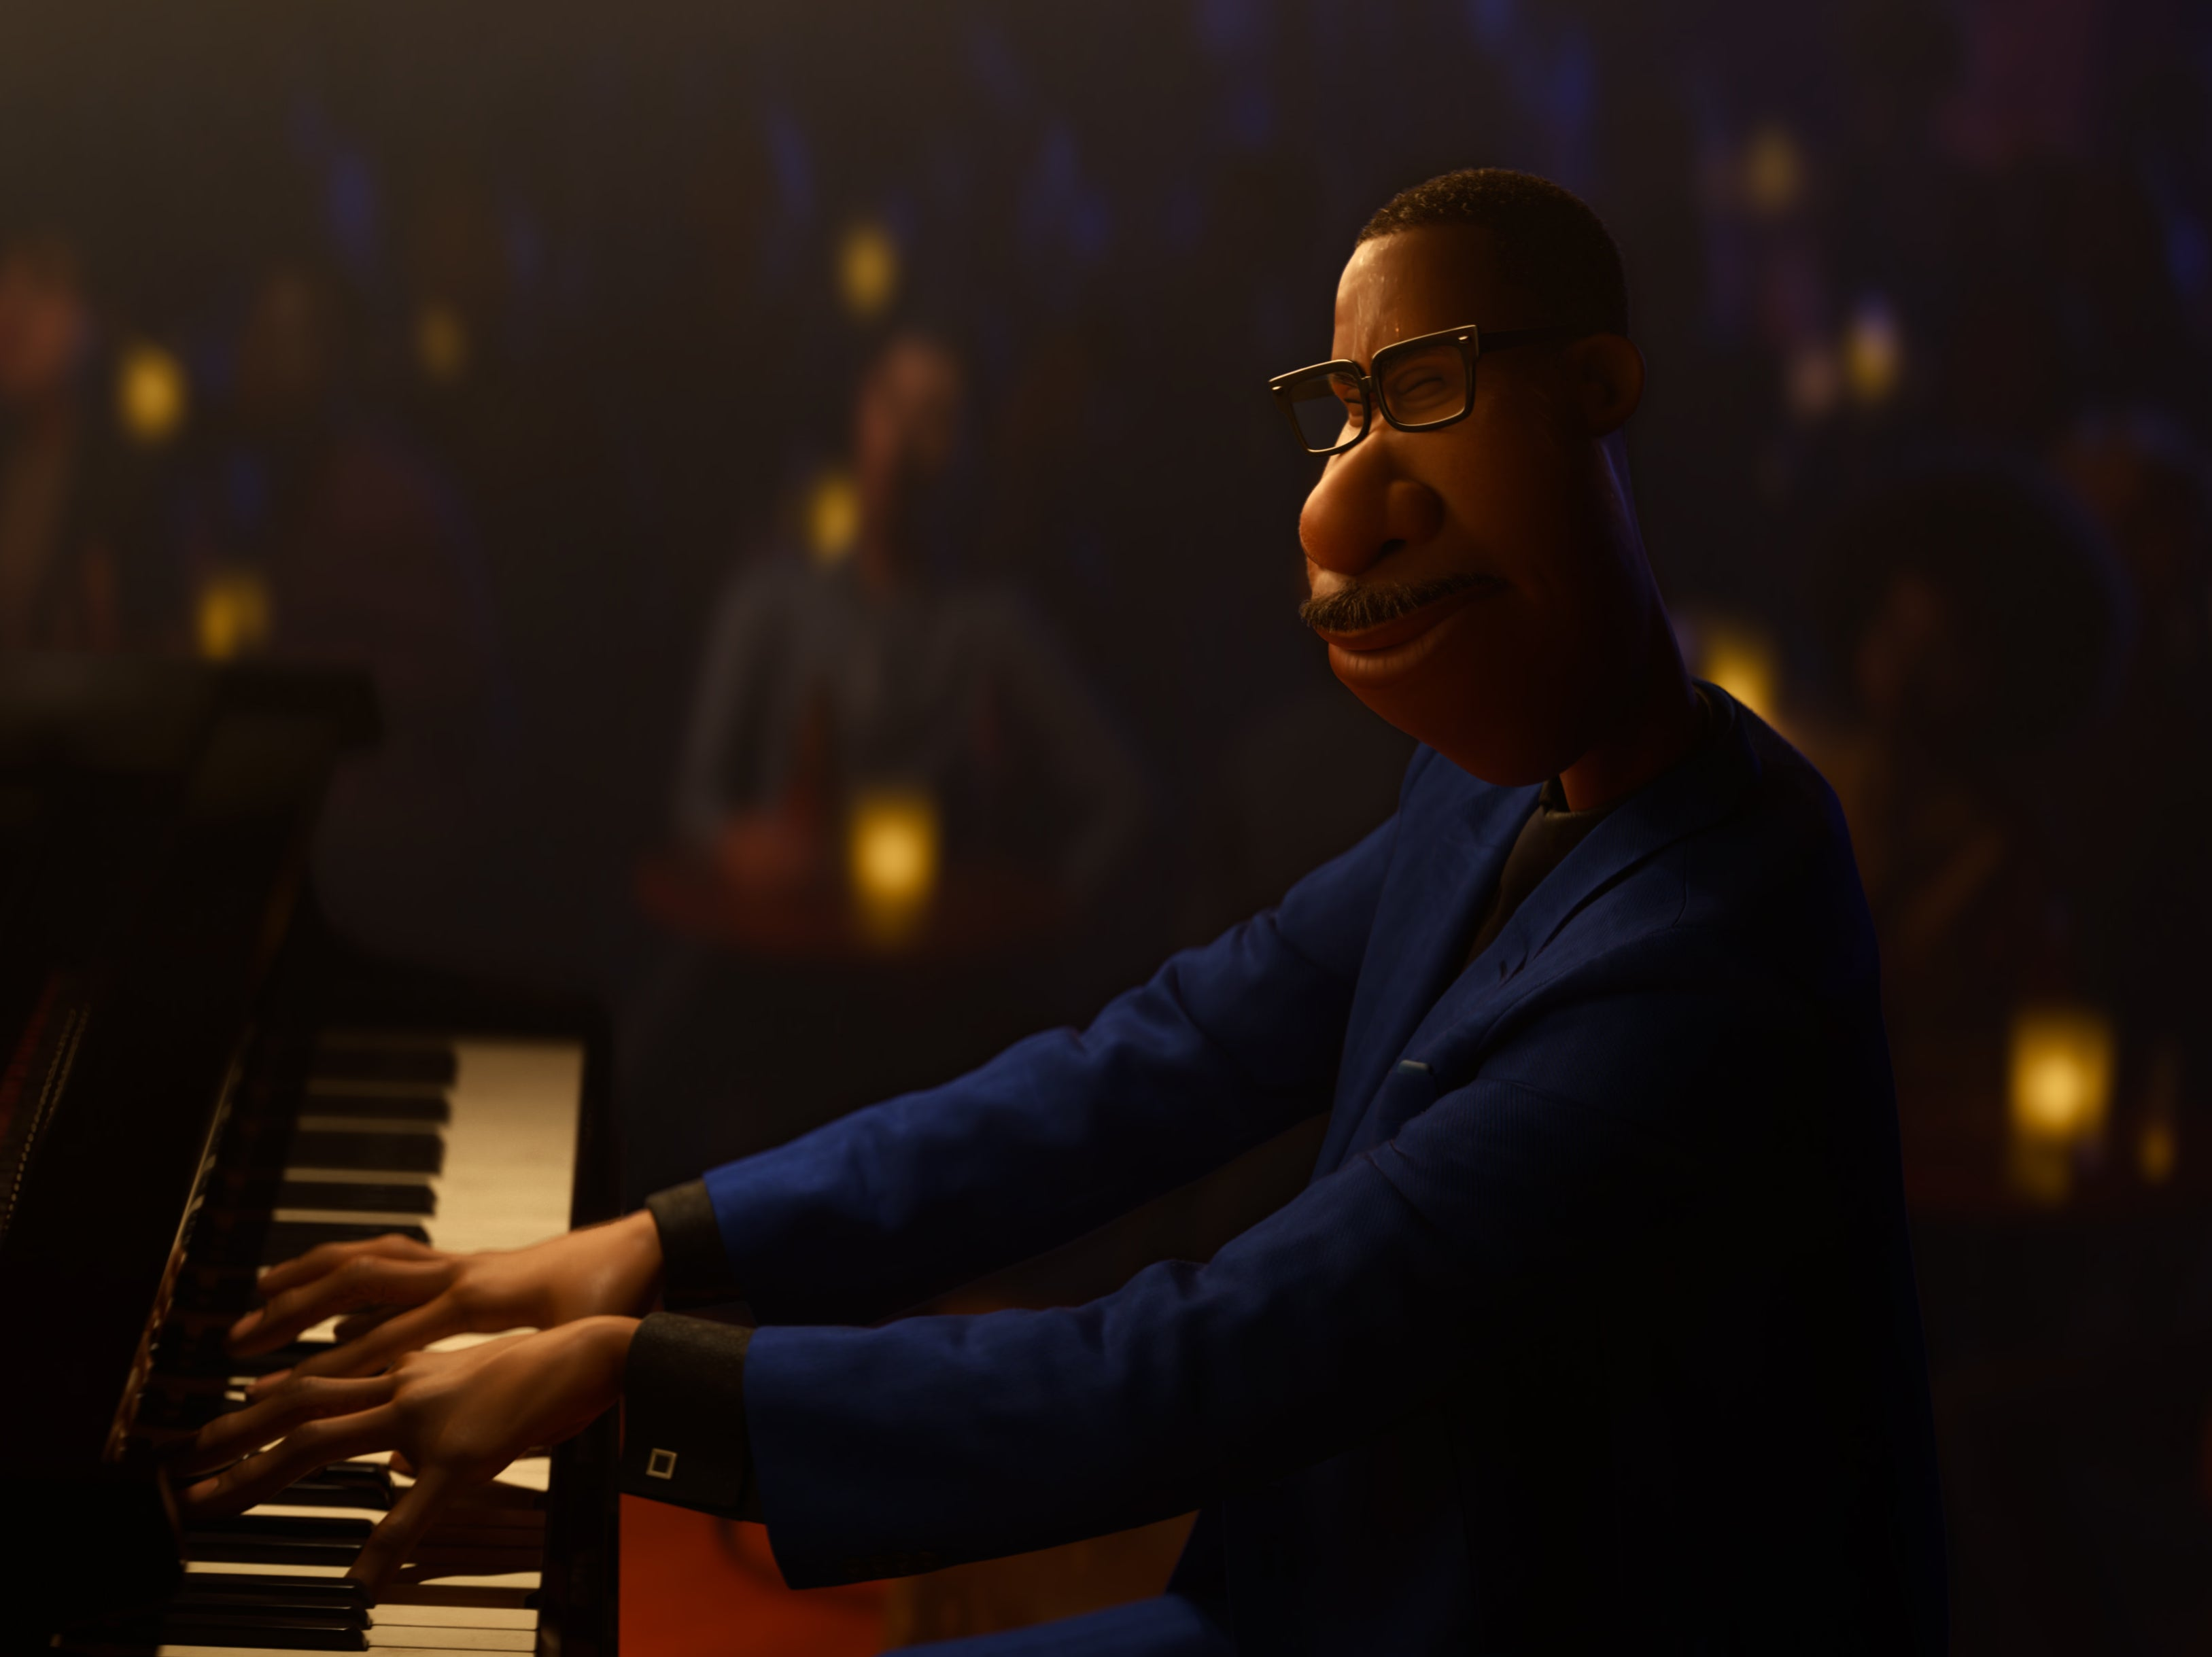 Pixar's Soul: 'This film is really gonna heal a lot of things for people' |  The Independent